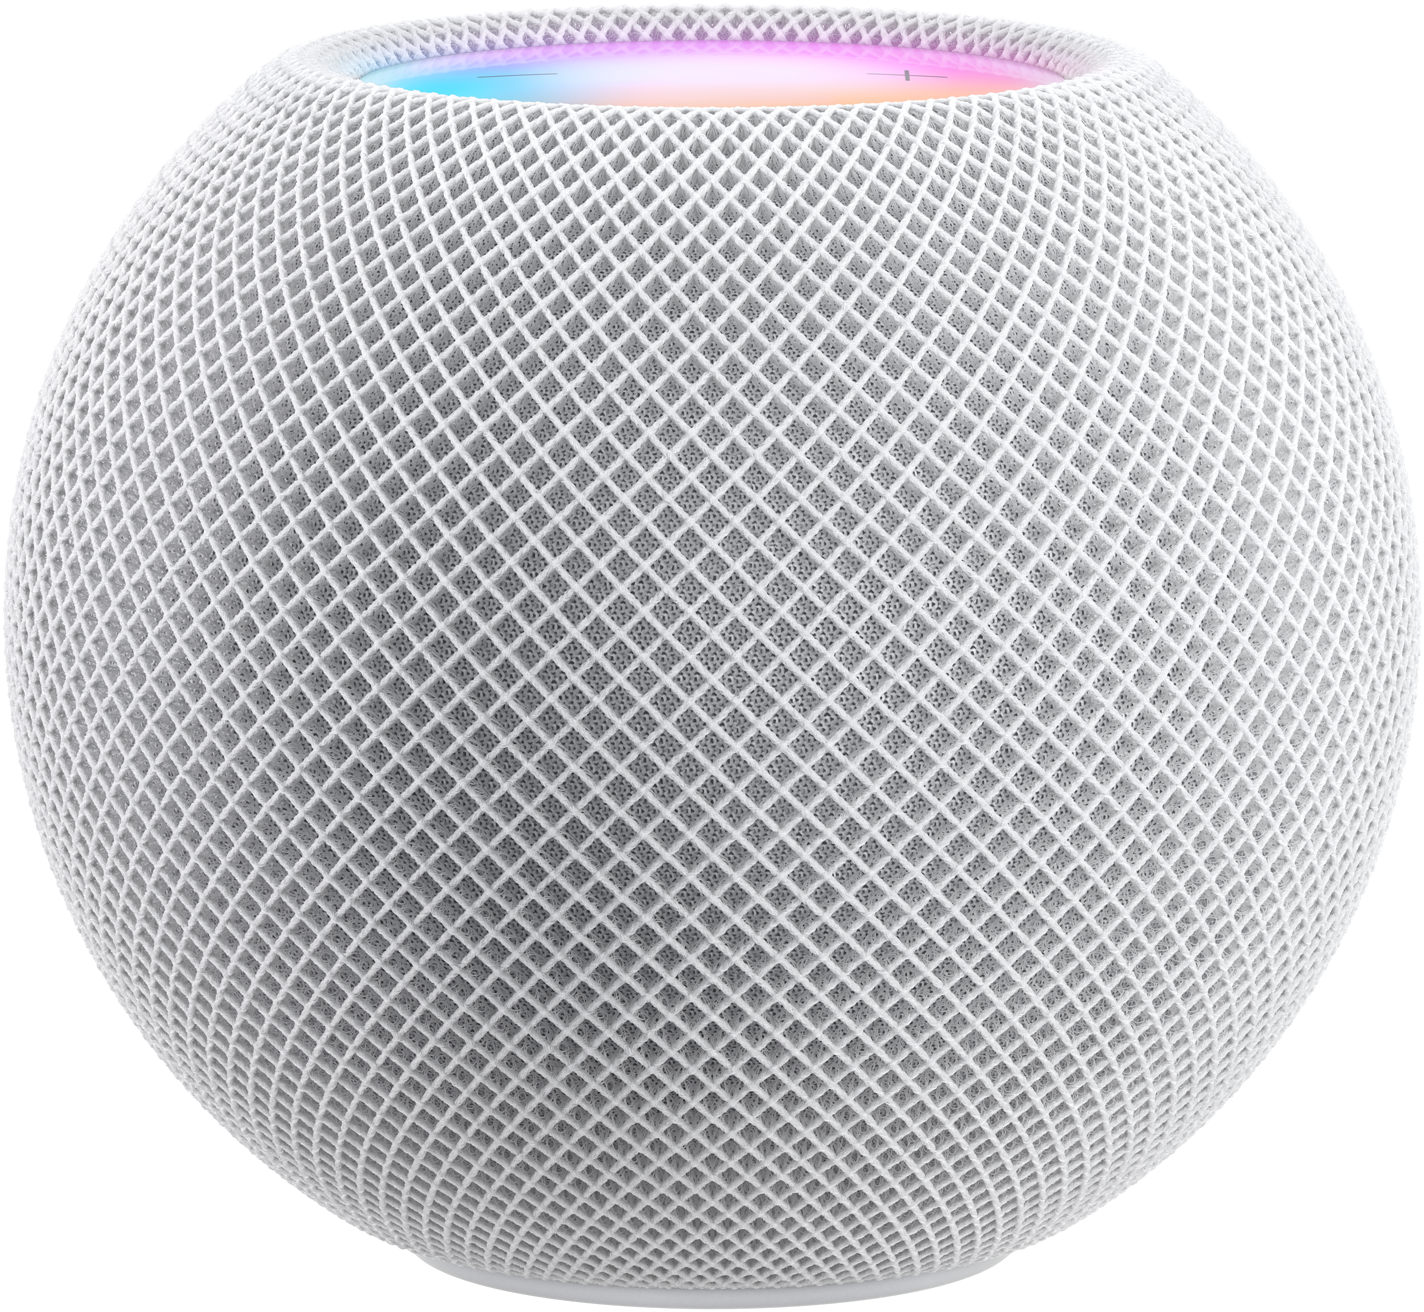 "White HomePod mini with colourful pixels in motion above it spelling the word ""mini""."